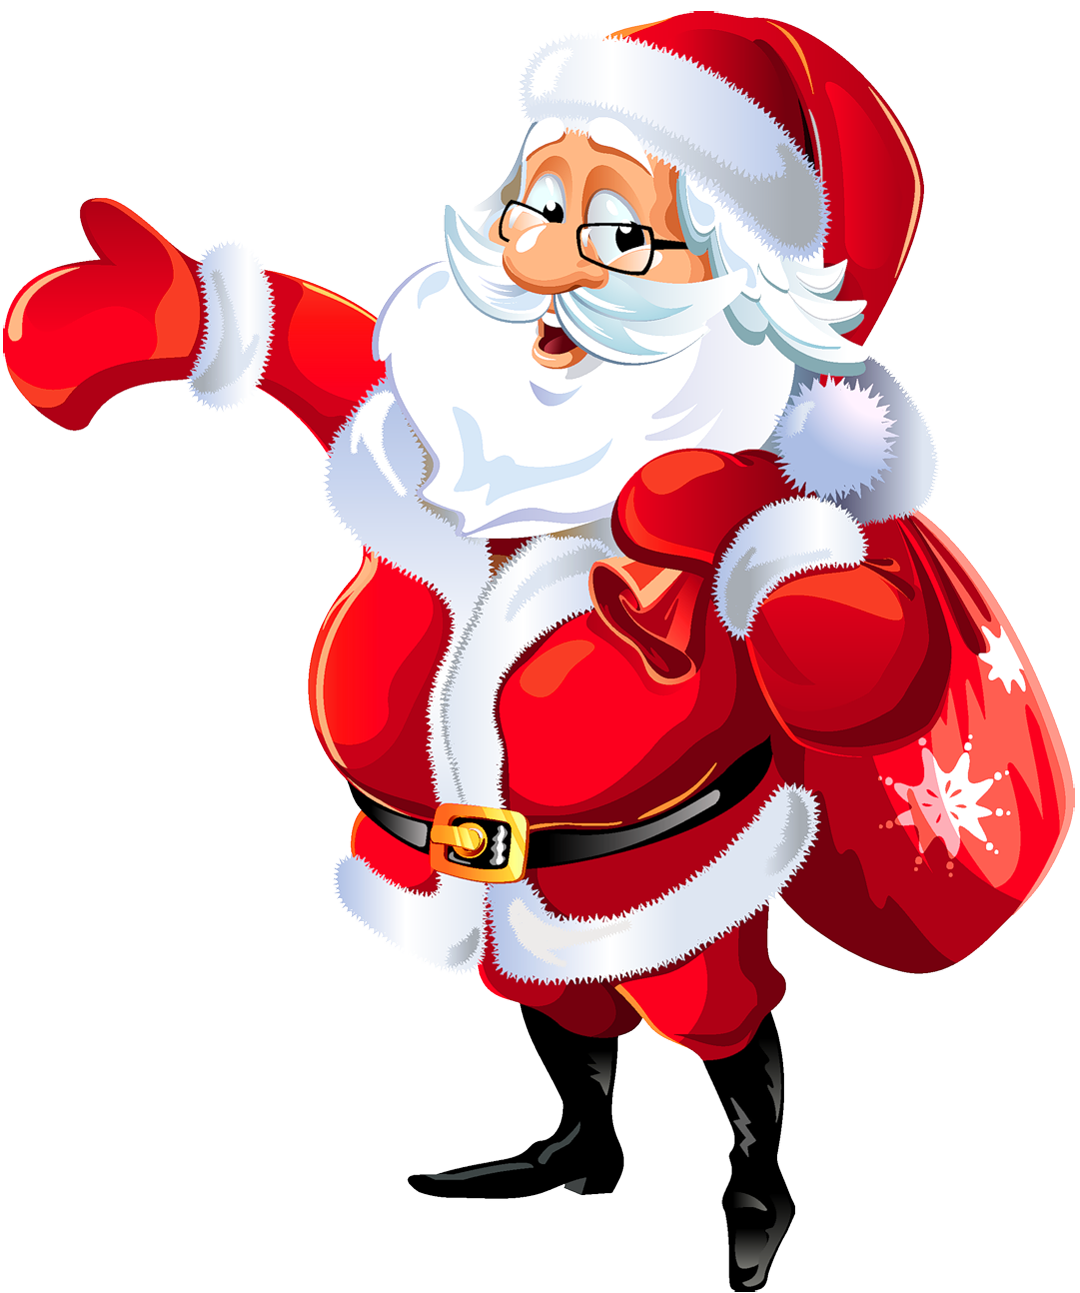 Merry christmas jesus clipart jpg library library Santa Claus Background Picture For Desktop PC - Happy Birthday Jesus ... jpg library library